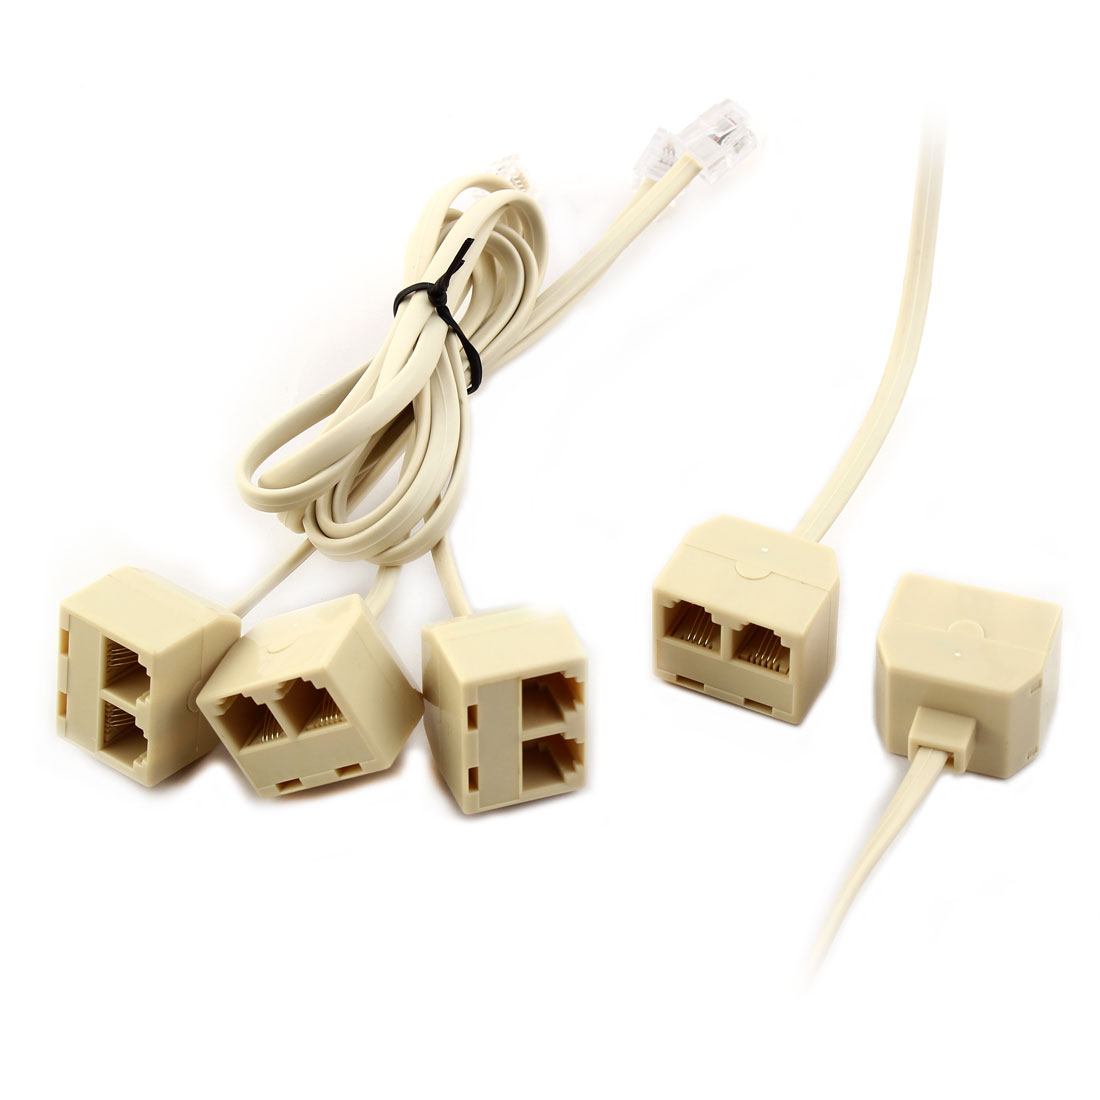 RJ11 Male to 2 Female 2 Way Telephone Cord Cable Line Connector Splitter 4 Pcs